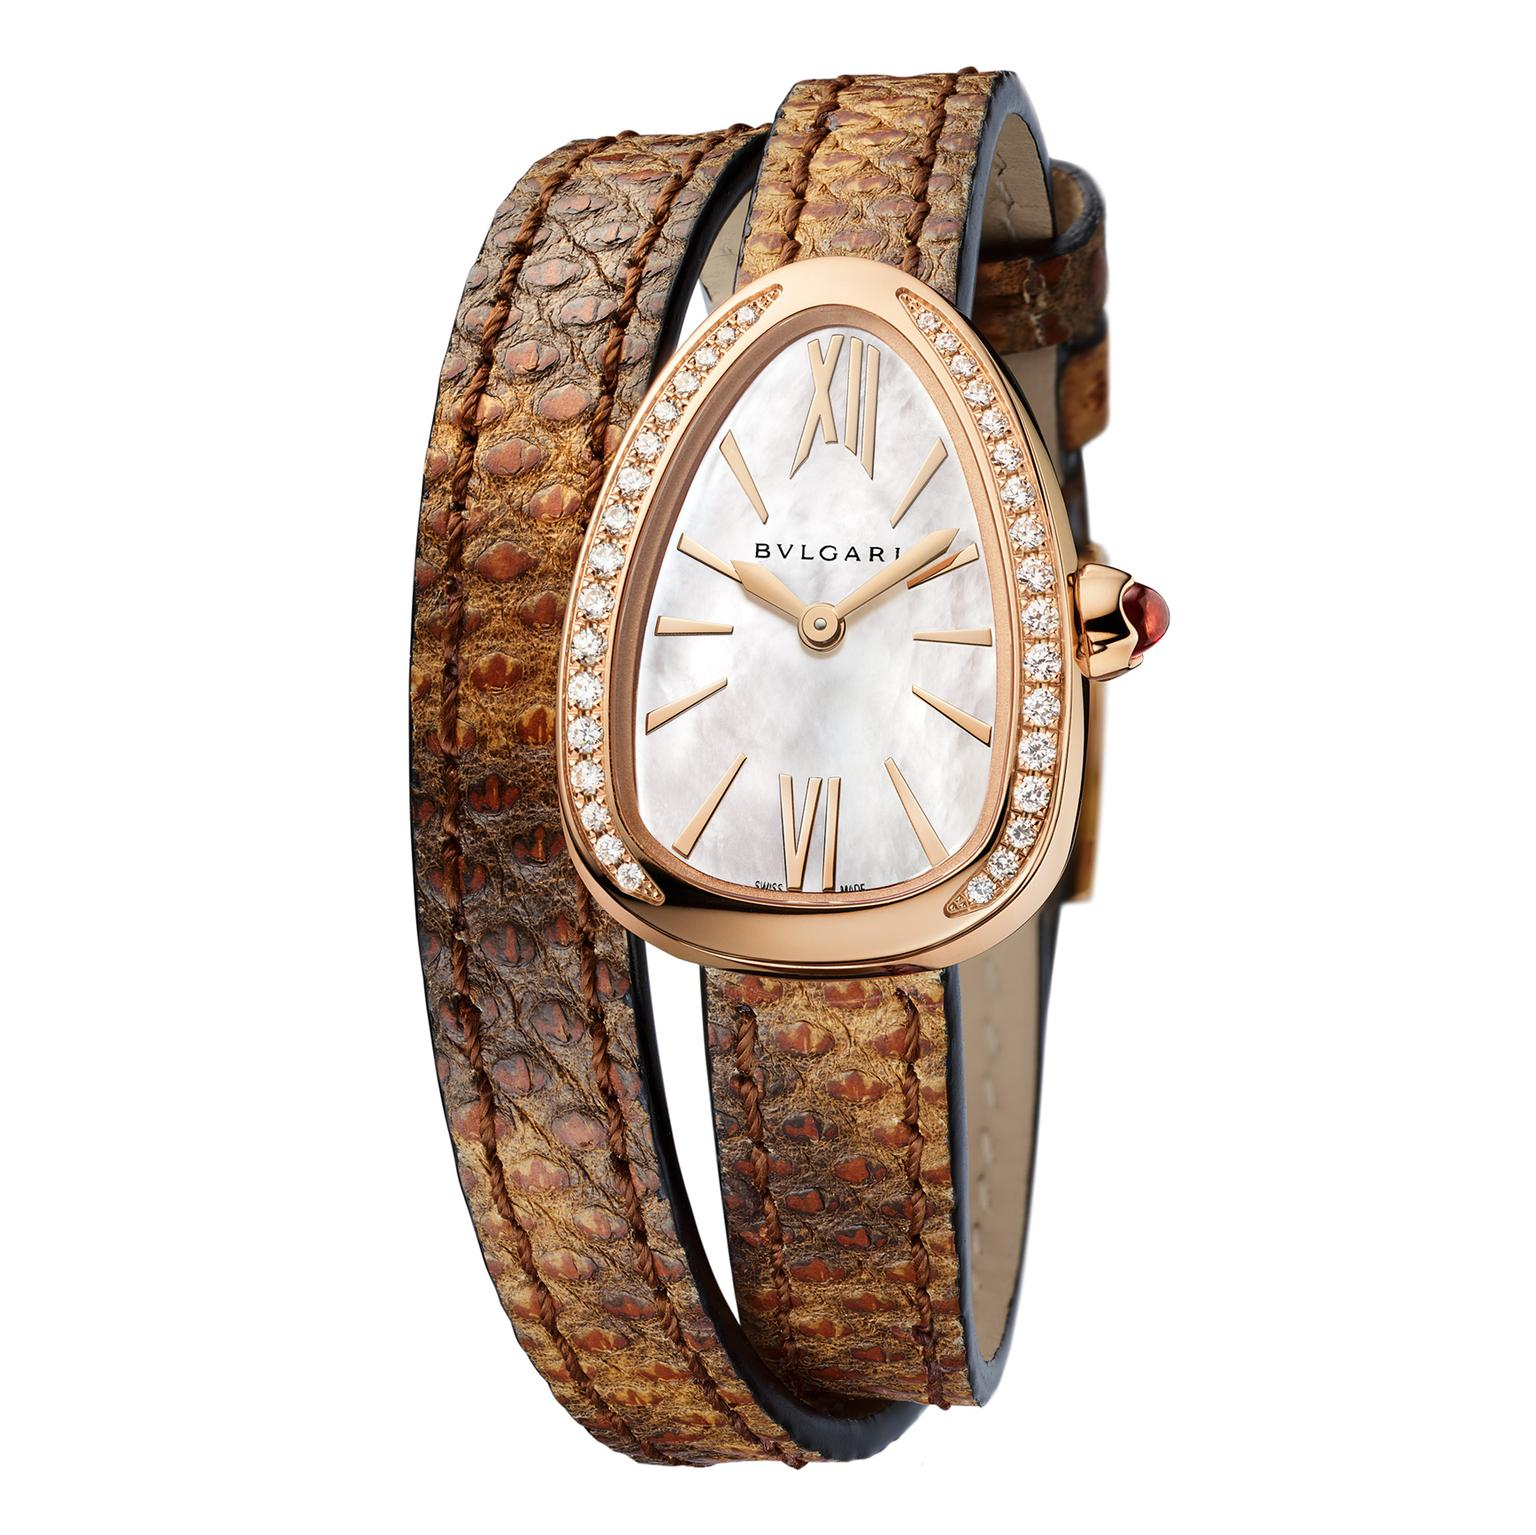 Bulgari Serpenti watch in rose gold with diamonds